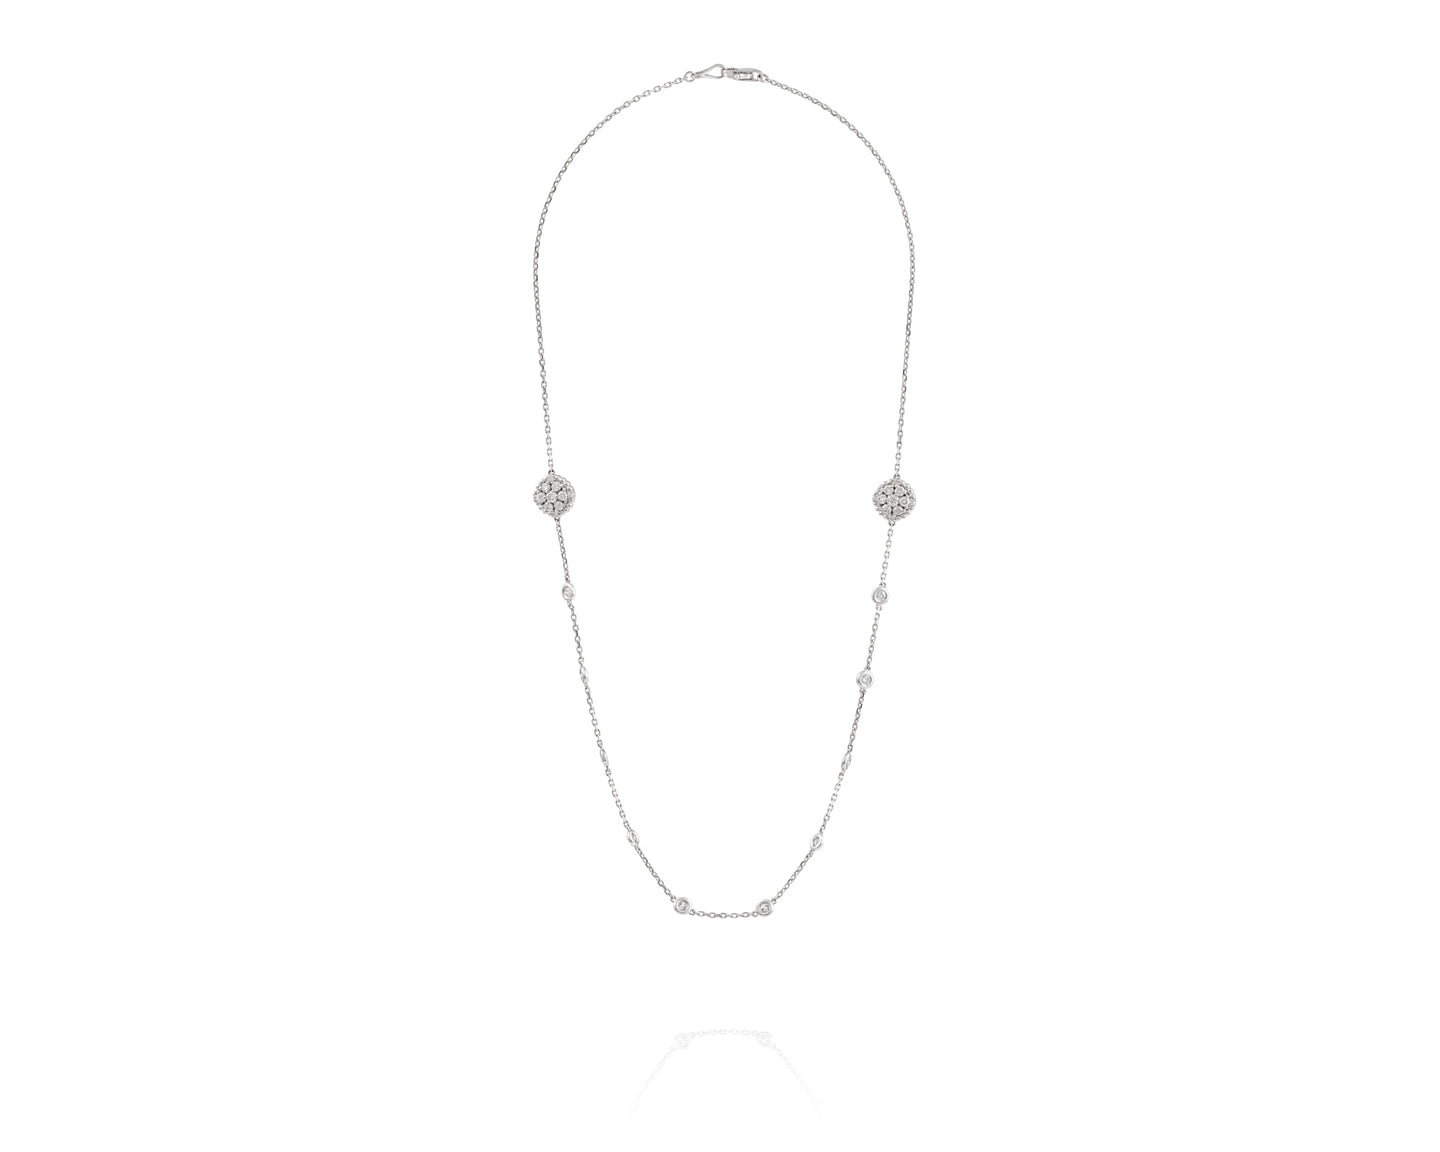 14k White Gold 1.10ct Diamond Necklace